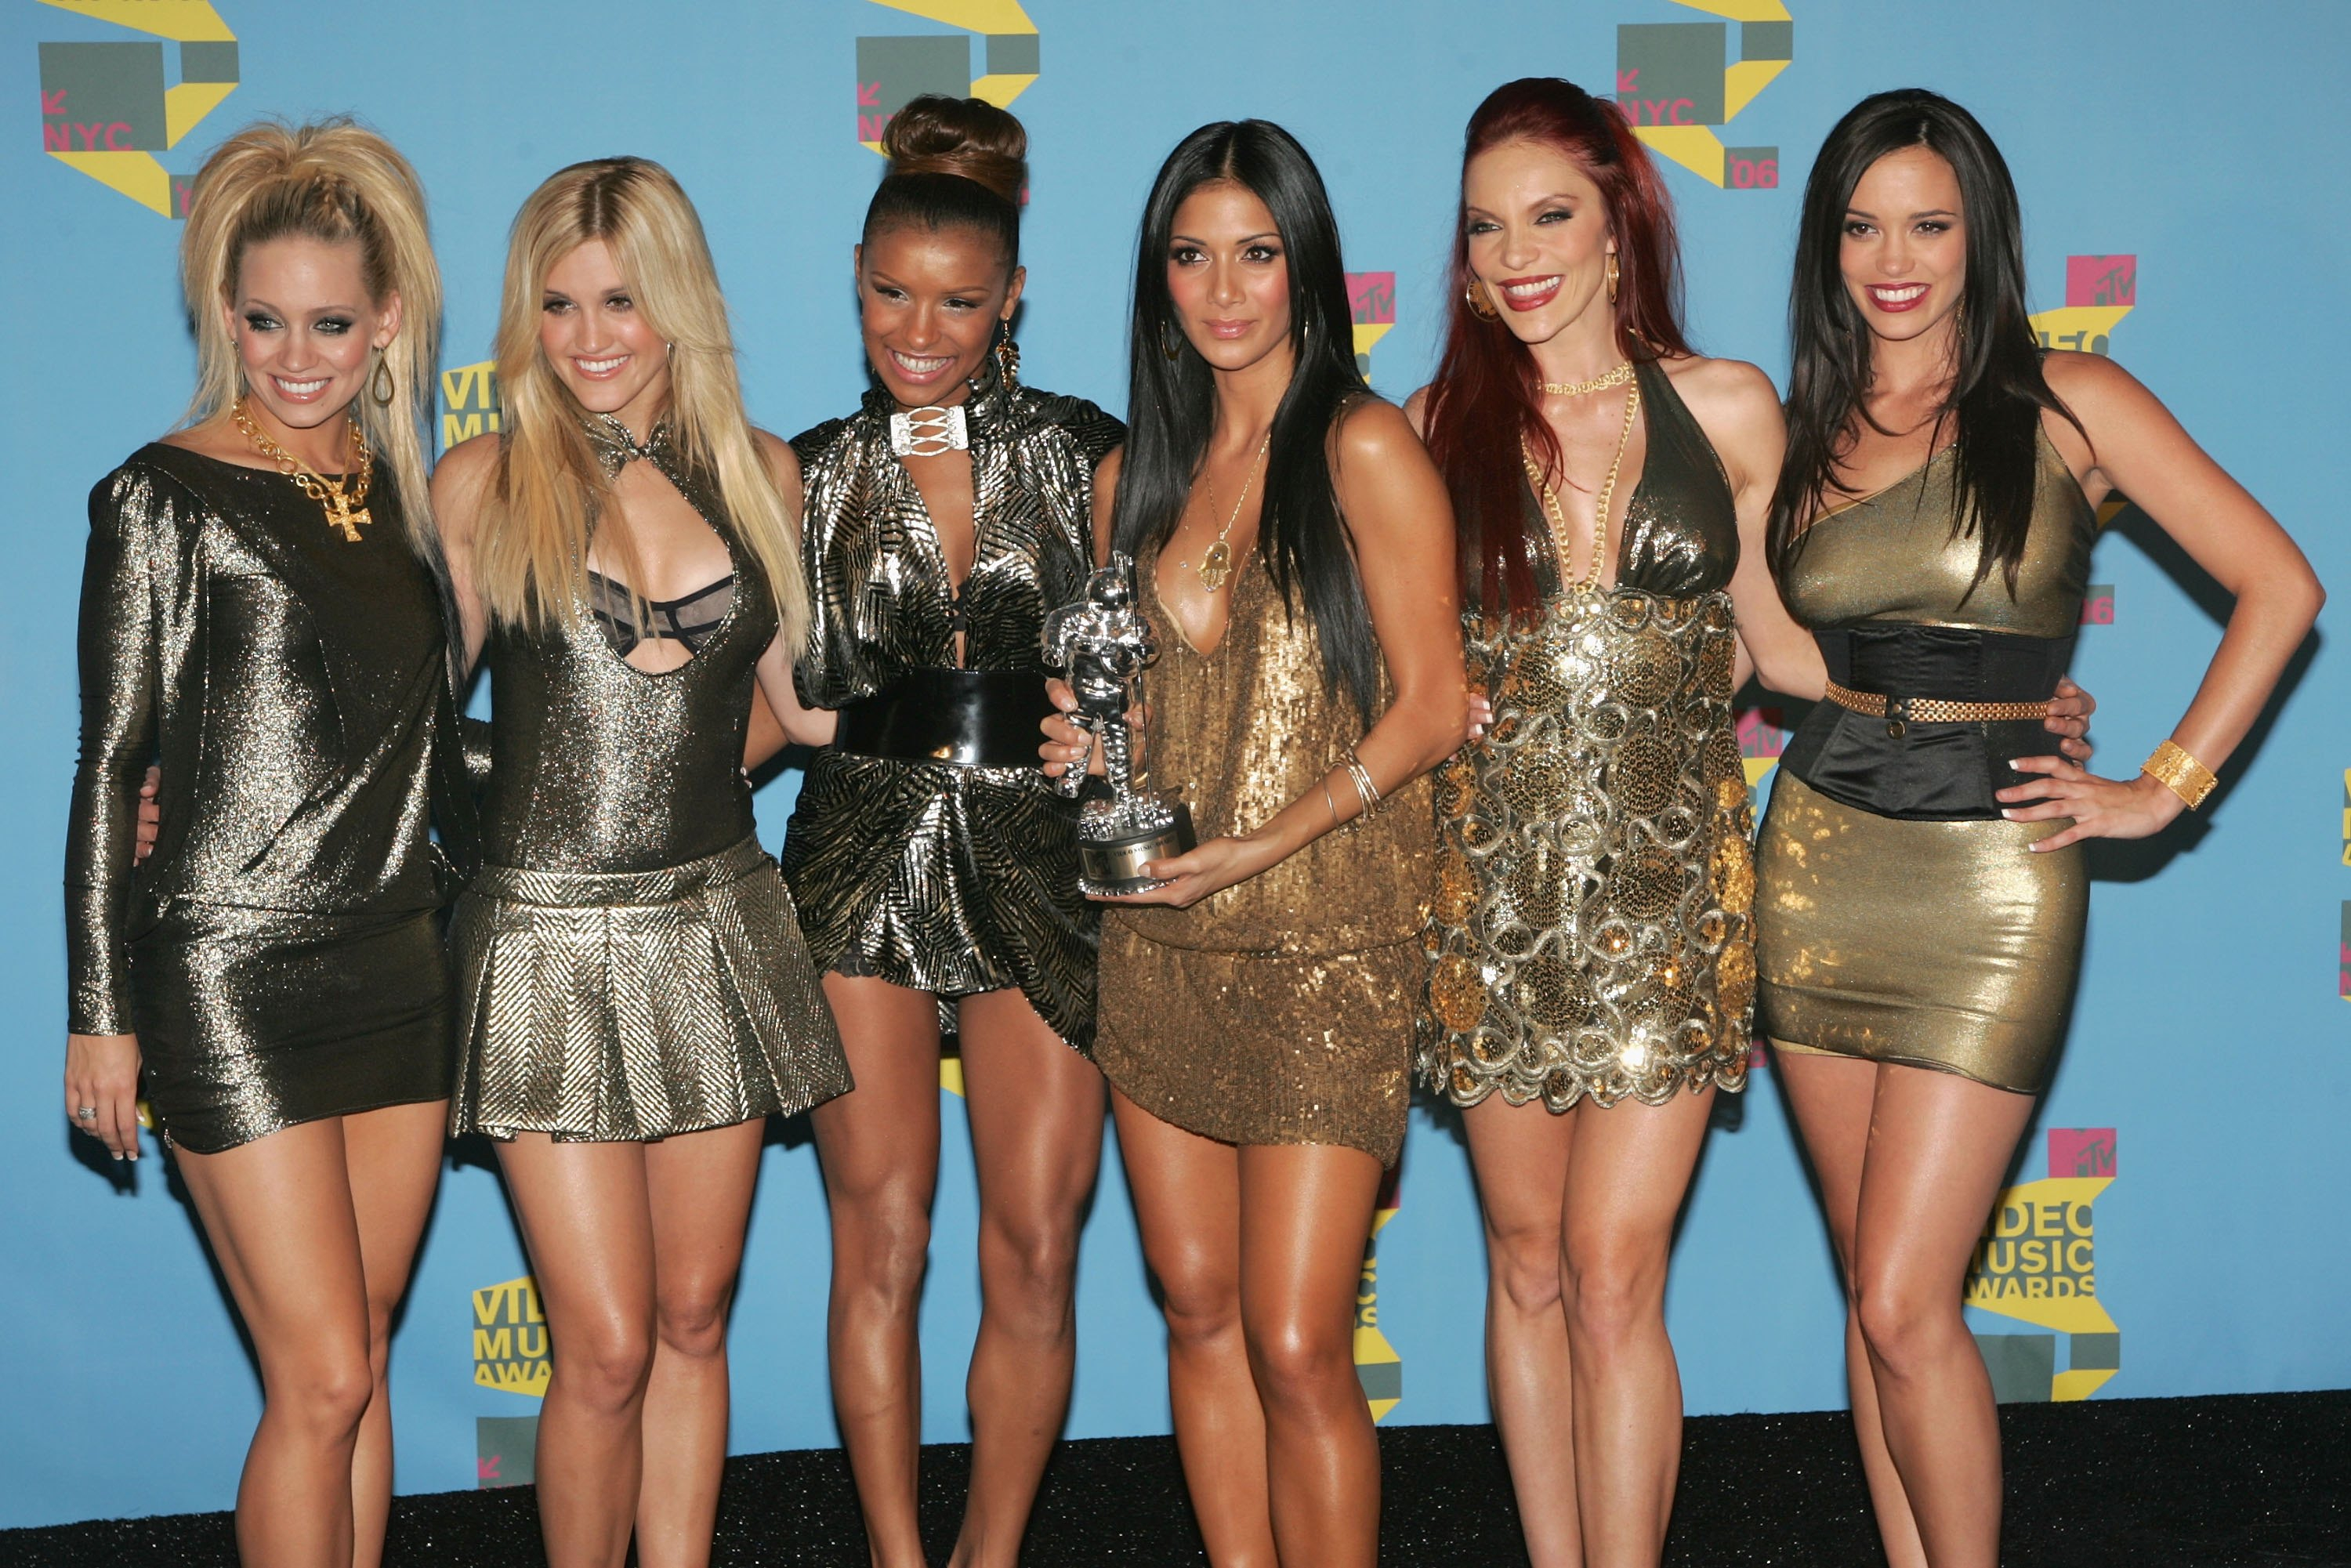 The Pussycat Dolls Sexy Wallpapers